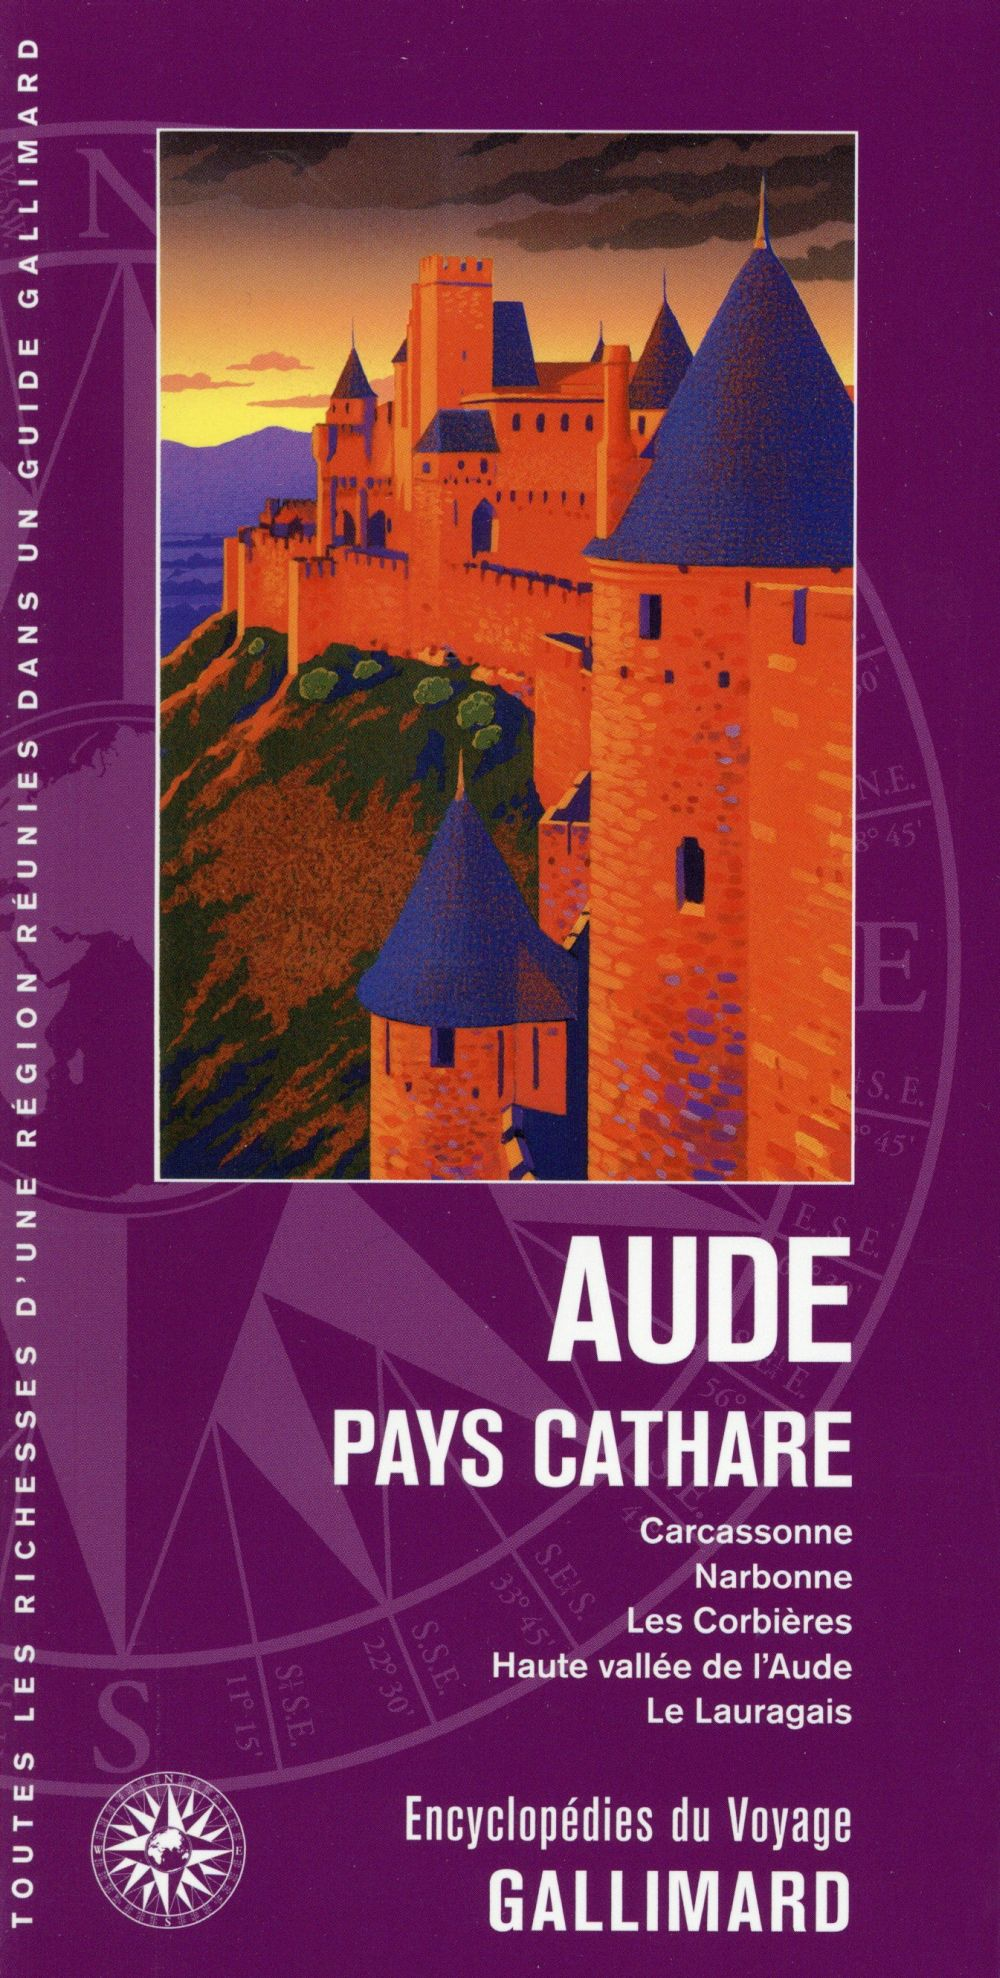 AUDE, PAYS CATHARE